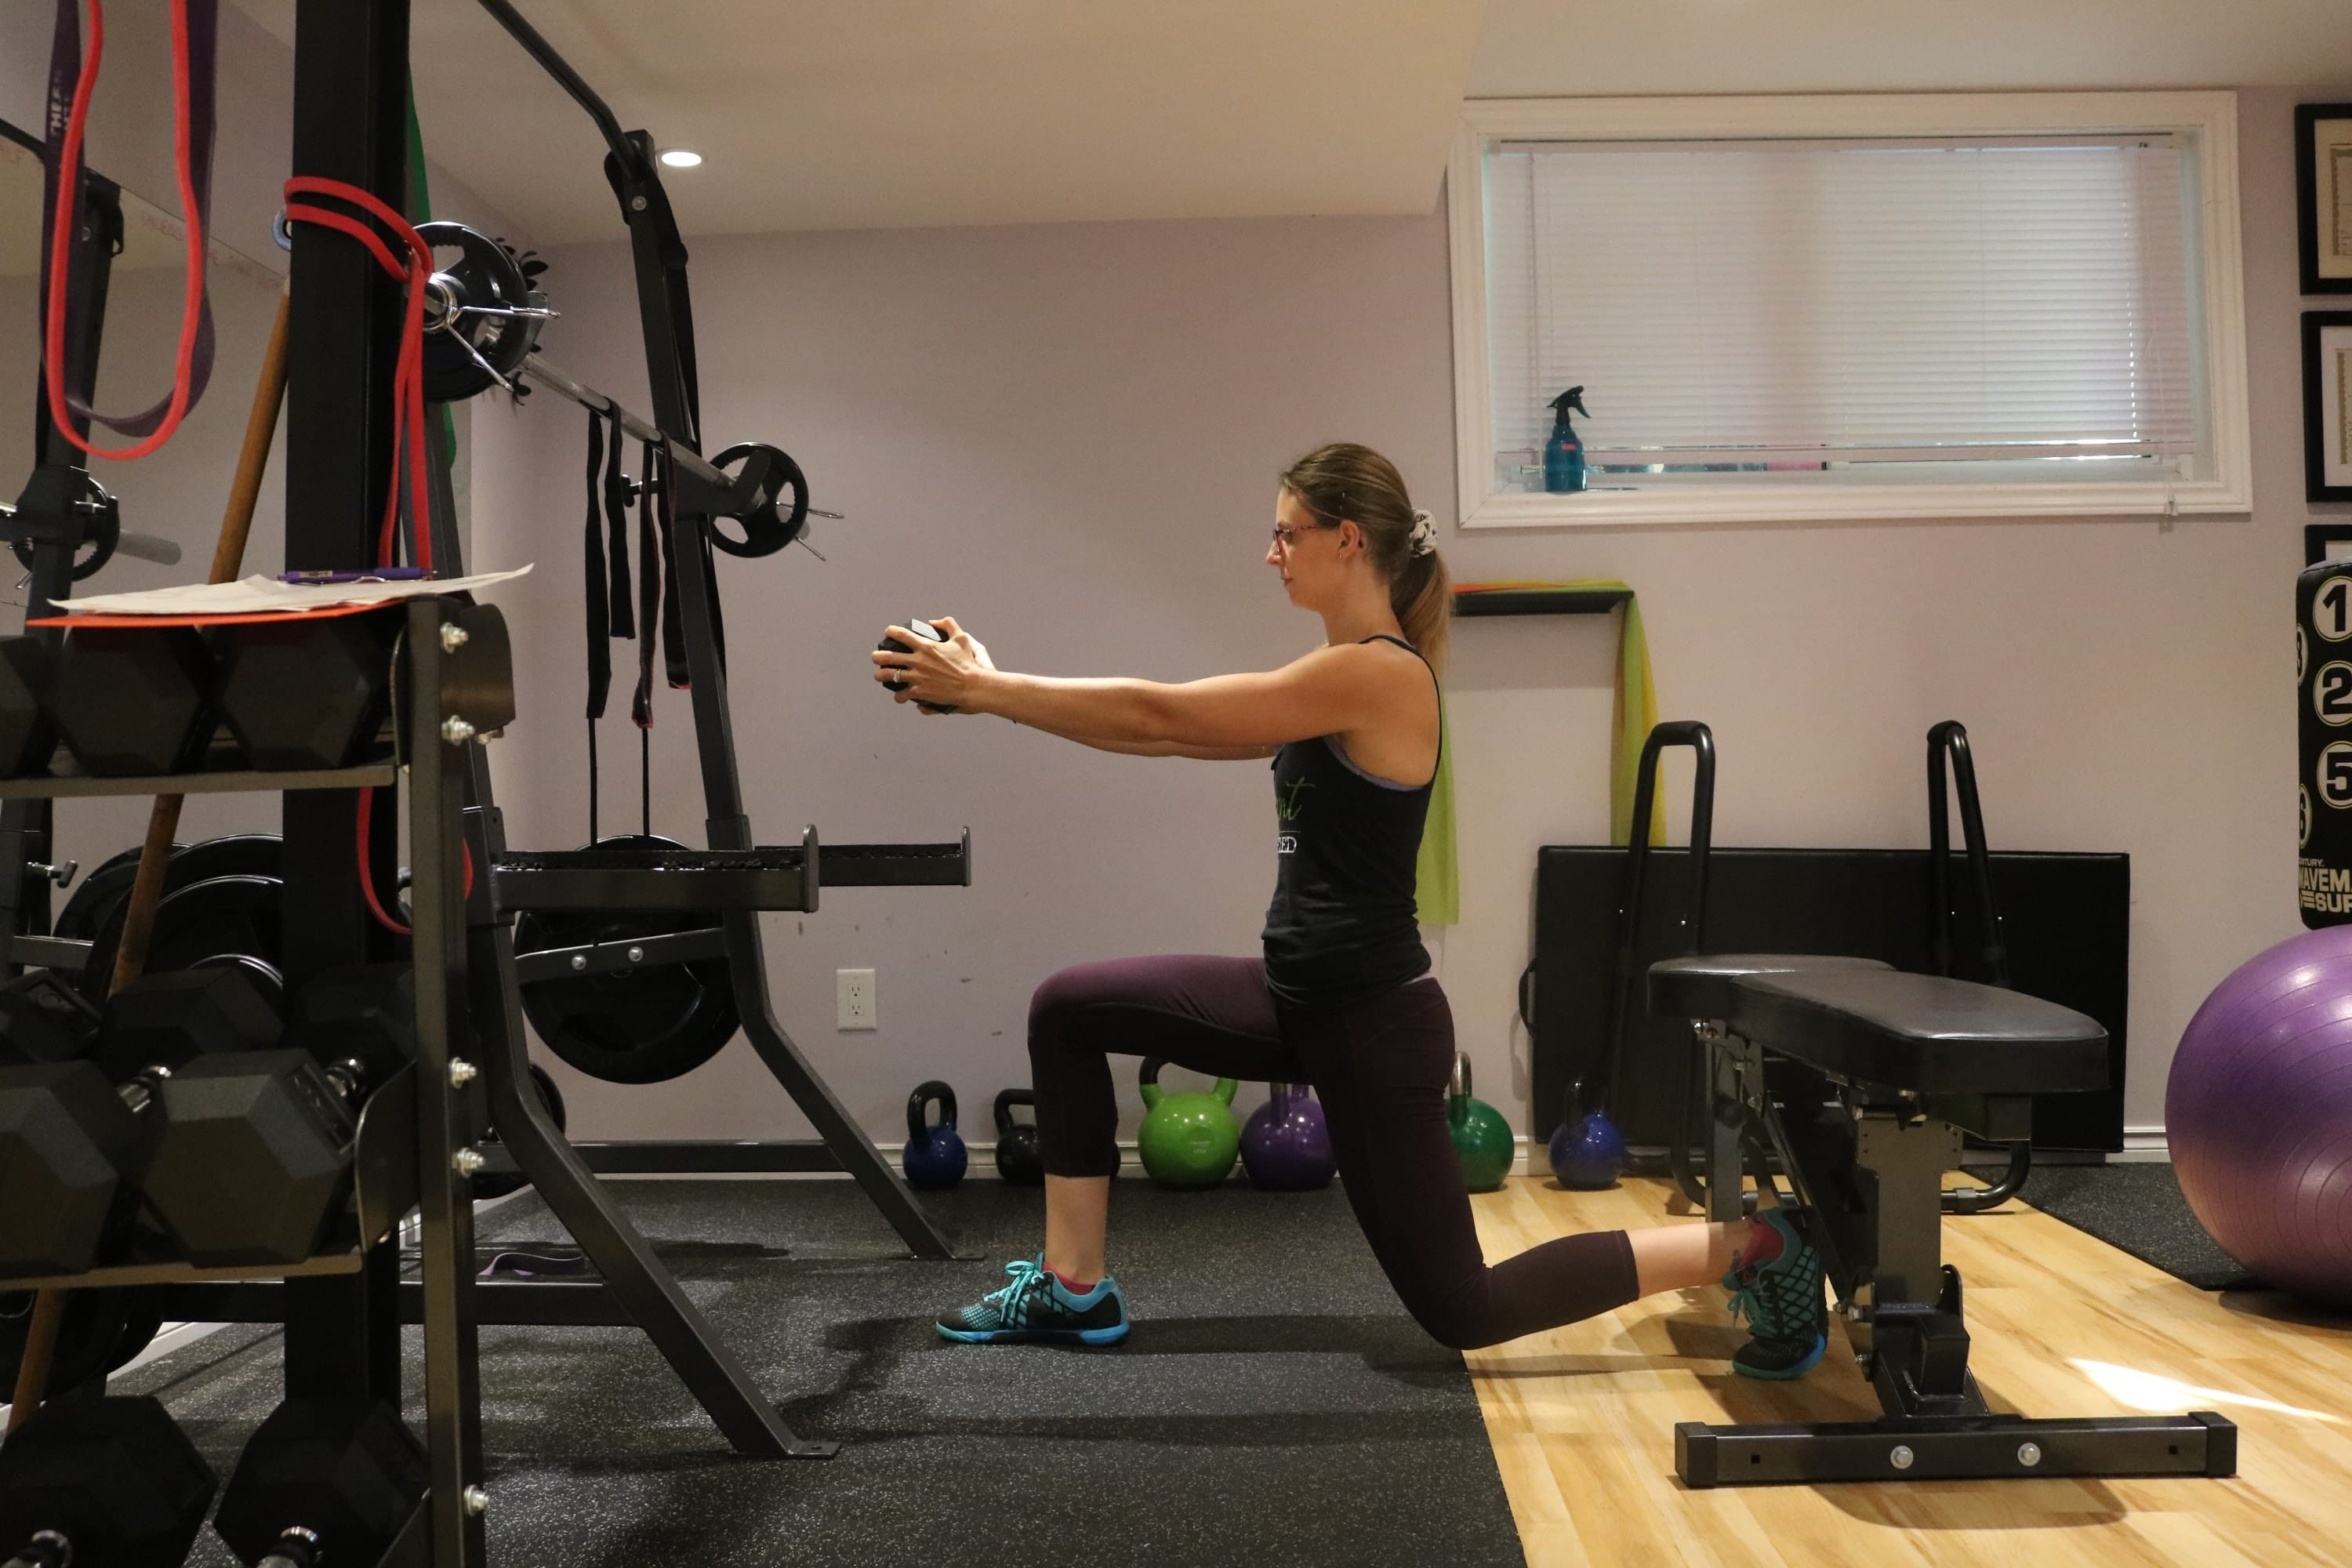 Woman in dark clothes in the gym performing a lunge with a dumbbell